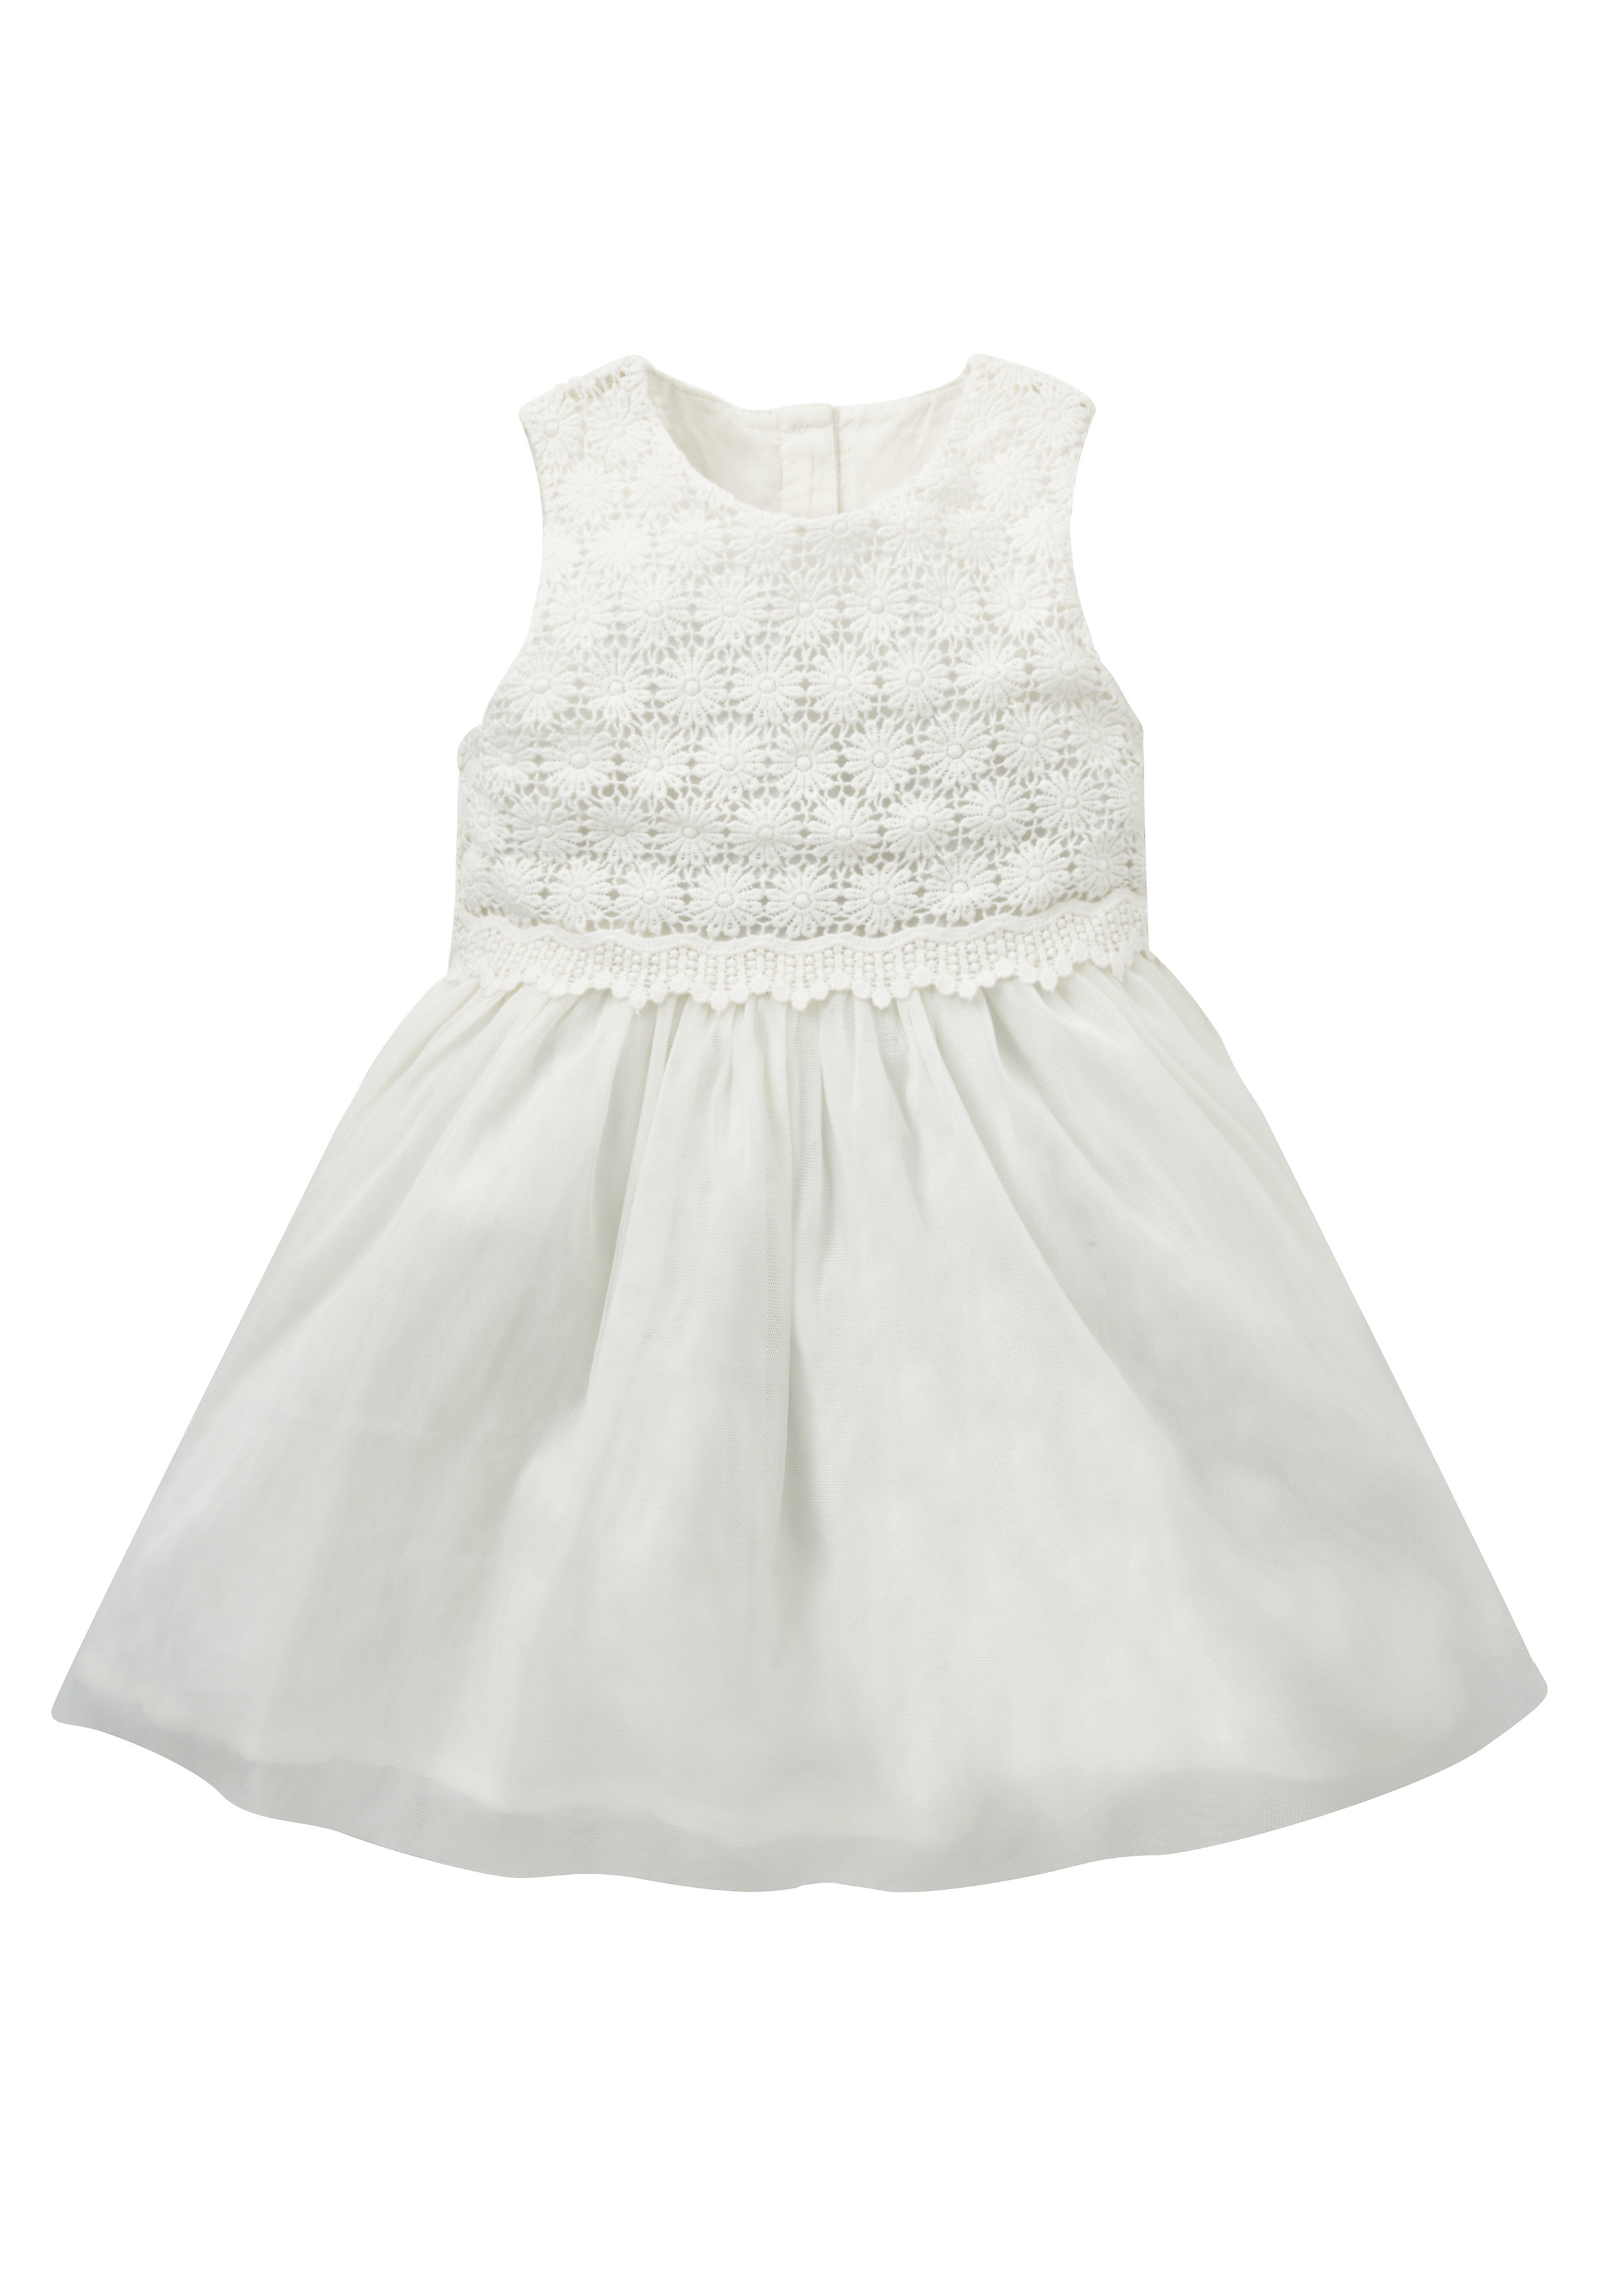 Mothercare   Girls Sleeveless Party Dress Embroidered Lace Detail - Cream